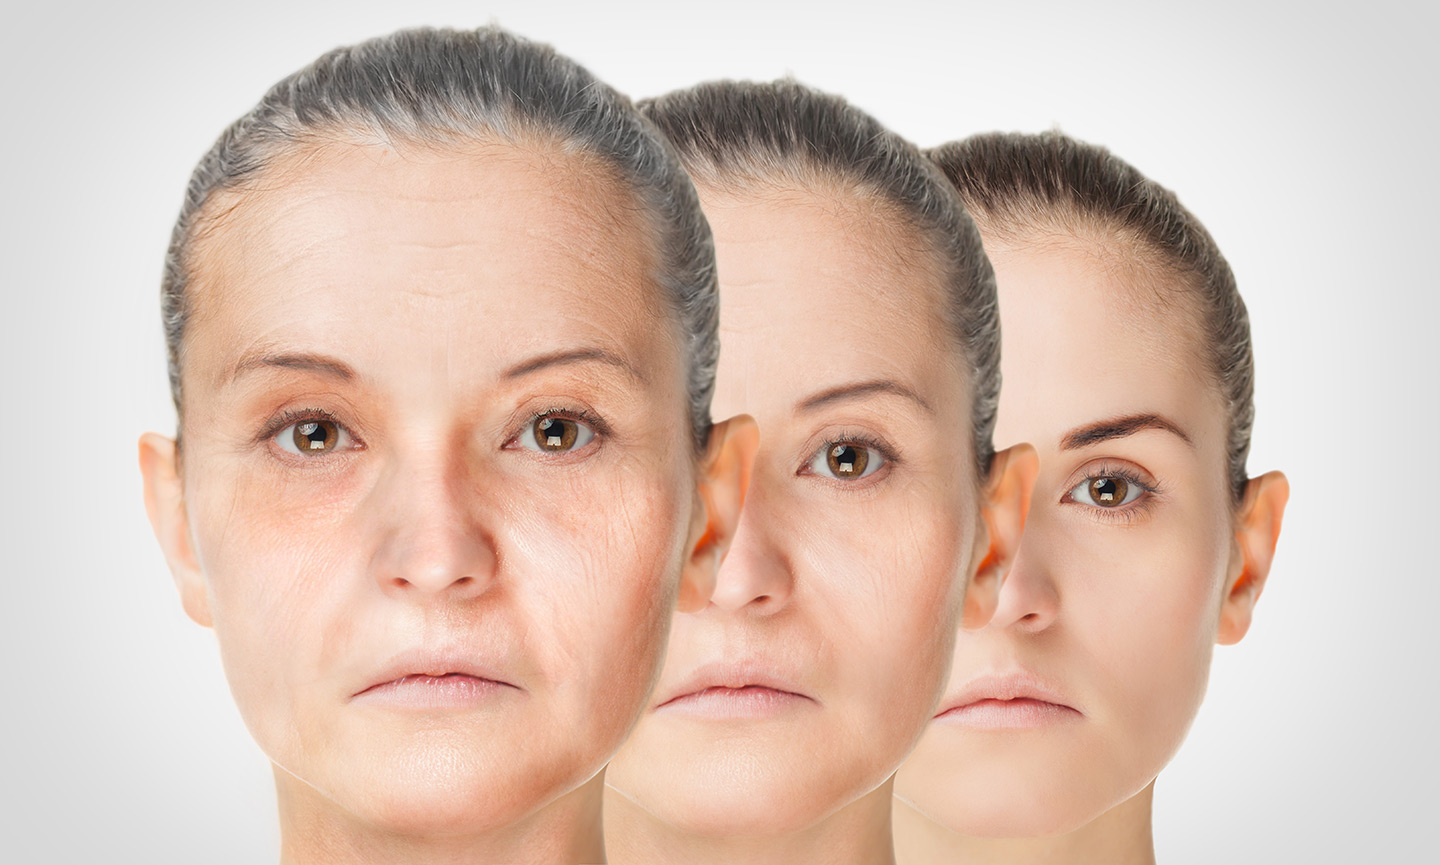 Bad Habits That Make Your Skin Age Faster